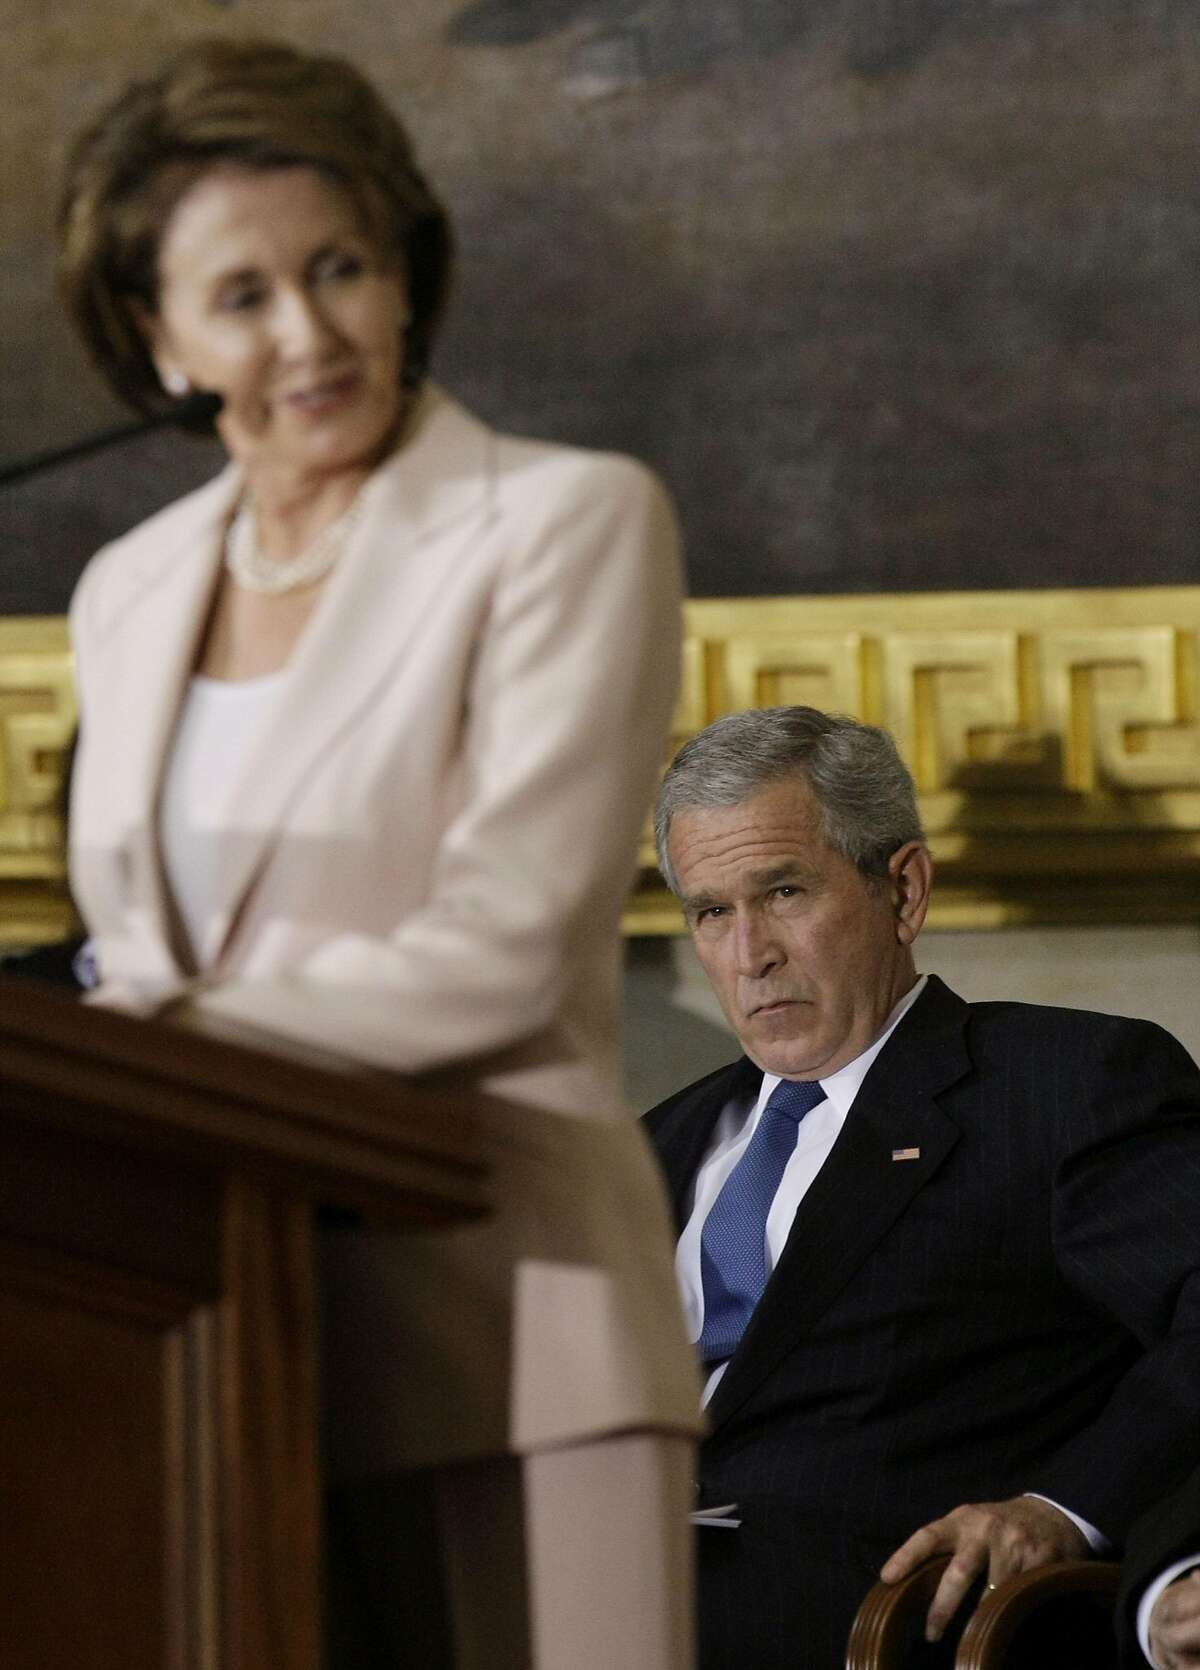 President Bush, right, listens as House Speaker Nancy Pelosi of Calif., left, speaks in the Capitol Rotunda on Capitol Hill in Washington, Tuesday, July 17, 2007, during a ceremony for Congressional Gold Medal recipient Norman Borlaug. (AP Photo/Pablo Martinez Monsivais)